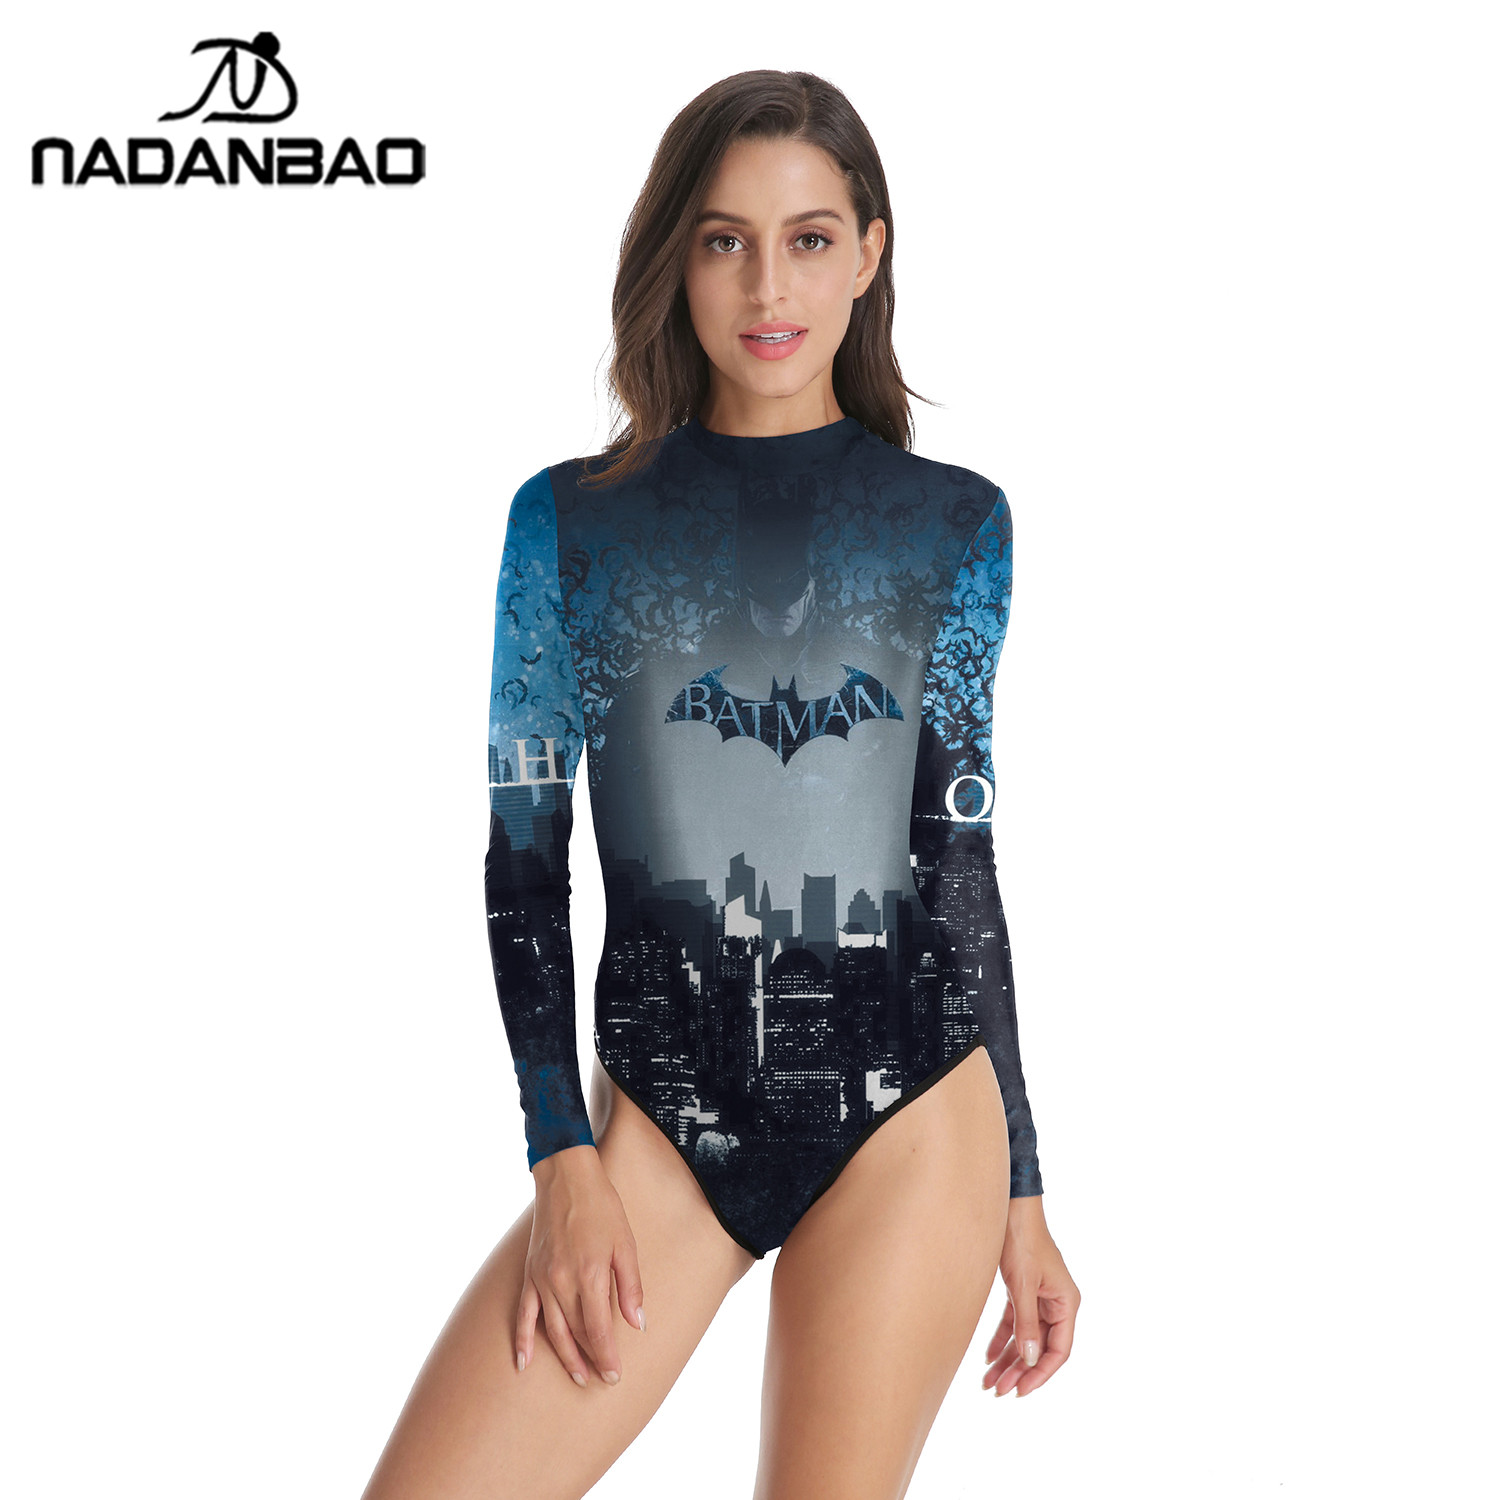 68328867f0cfc0 Hot Style Surfing Bathing Suit Batman Printed Women Swimwear Loog Sleeve  Swimsuit Zippered One Piece Swimsuit